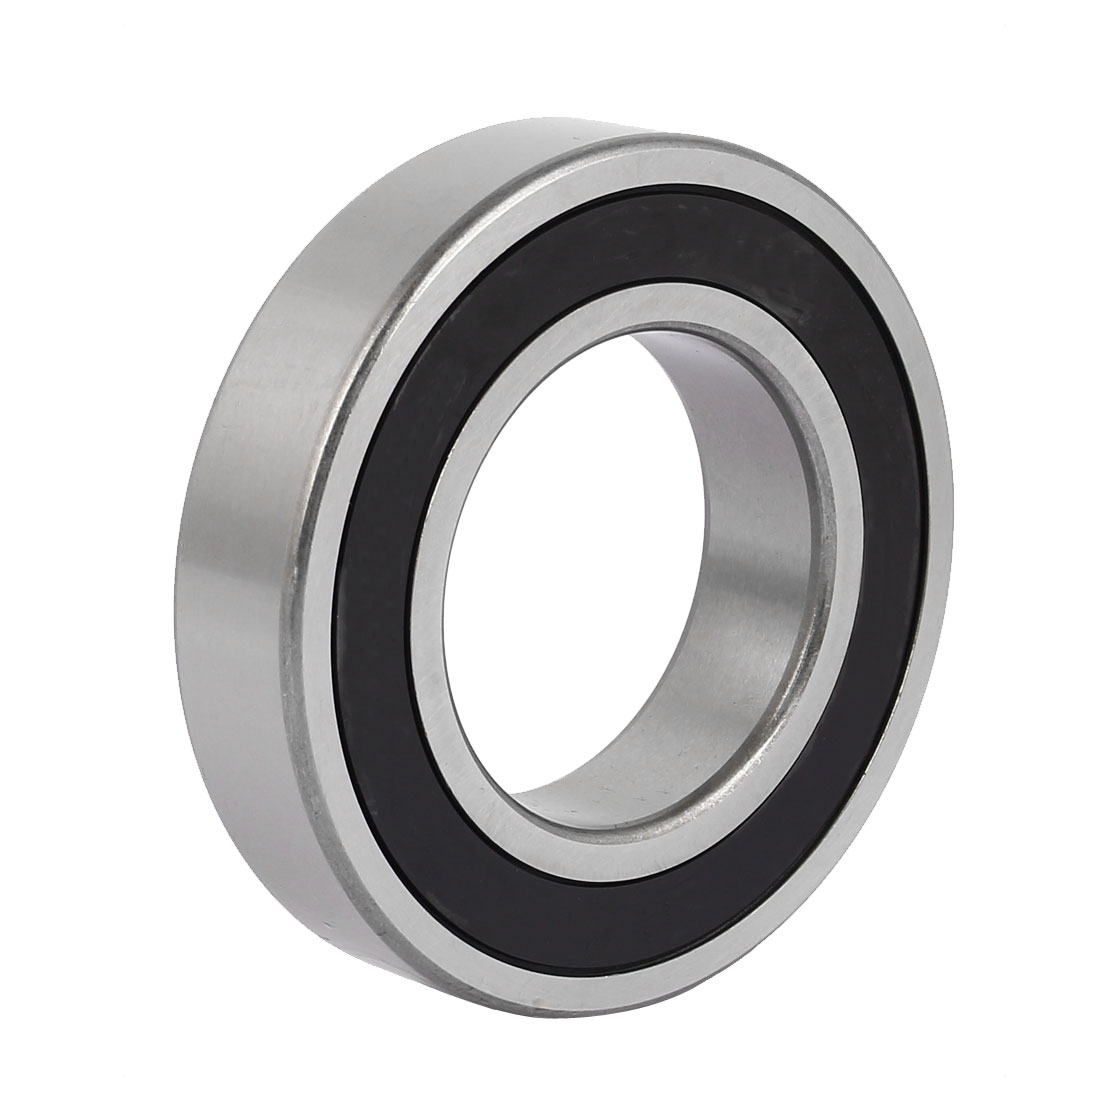 2RS6210 90mm x 50mm x 20mm Double Rubber Sealed Deep Groove Ball Bearing